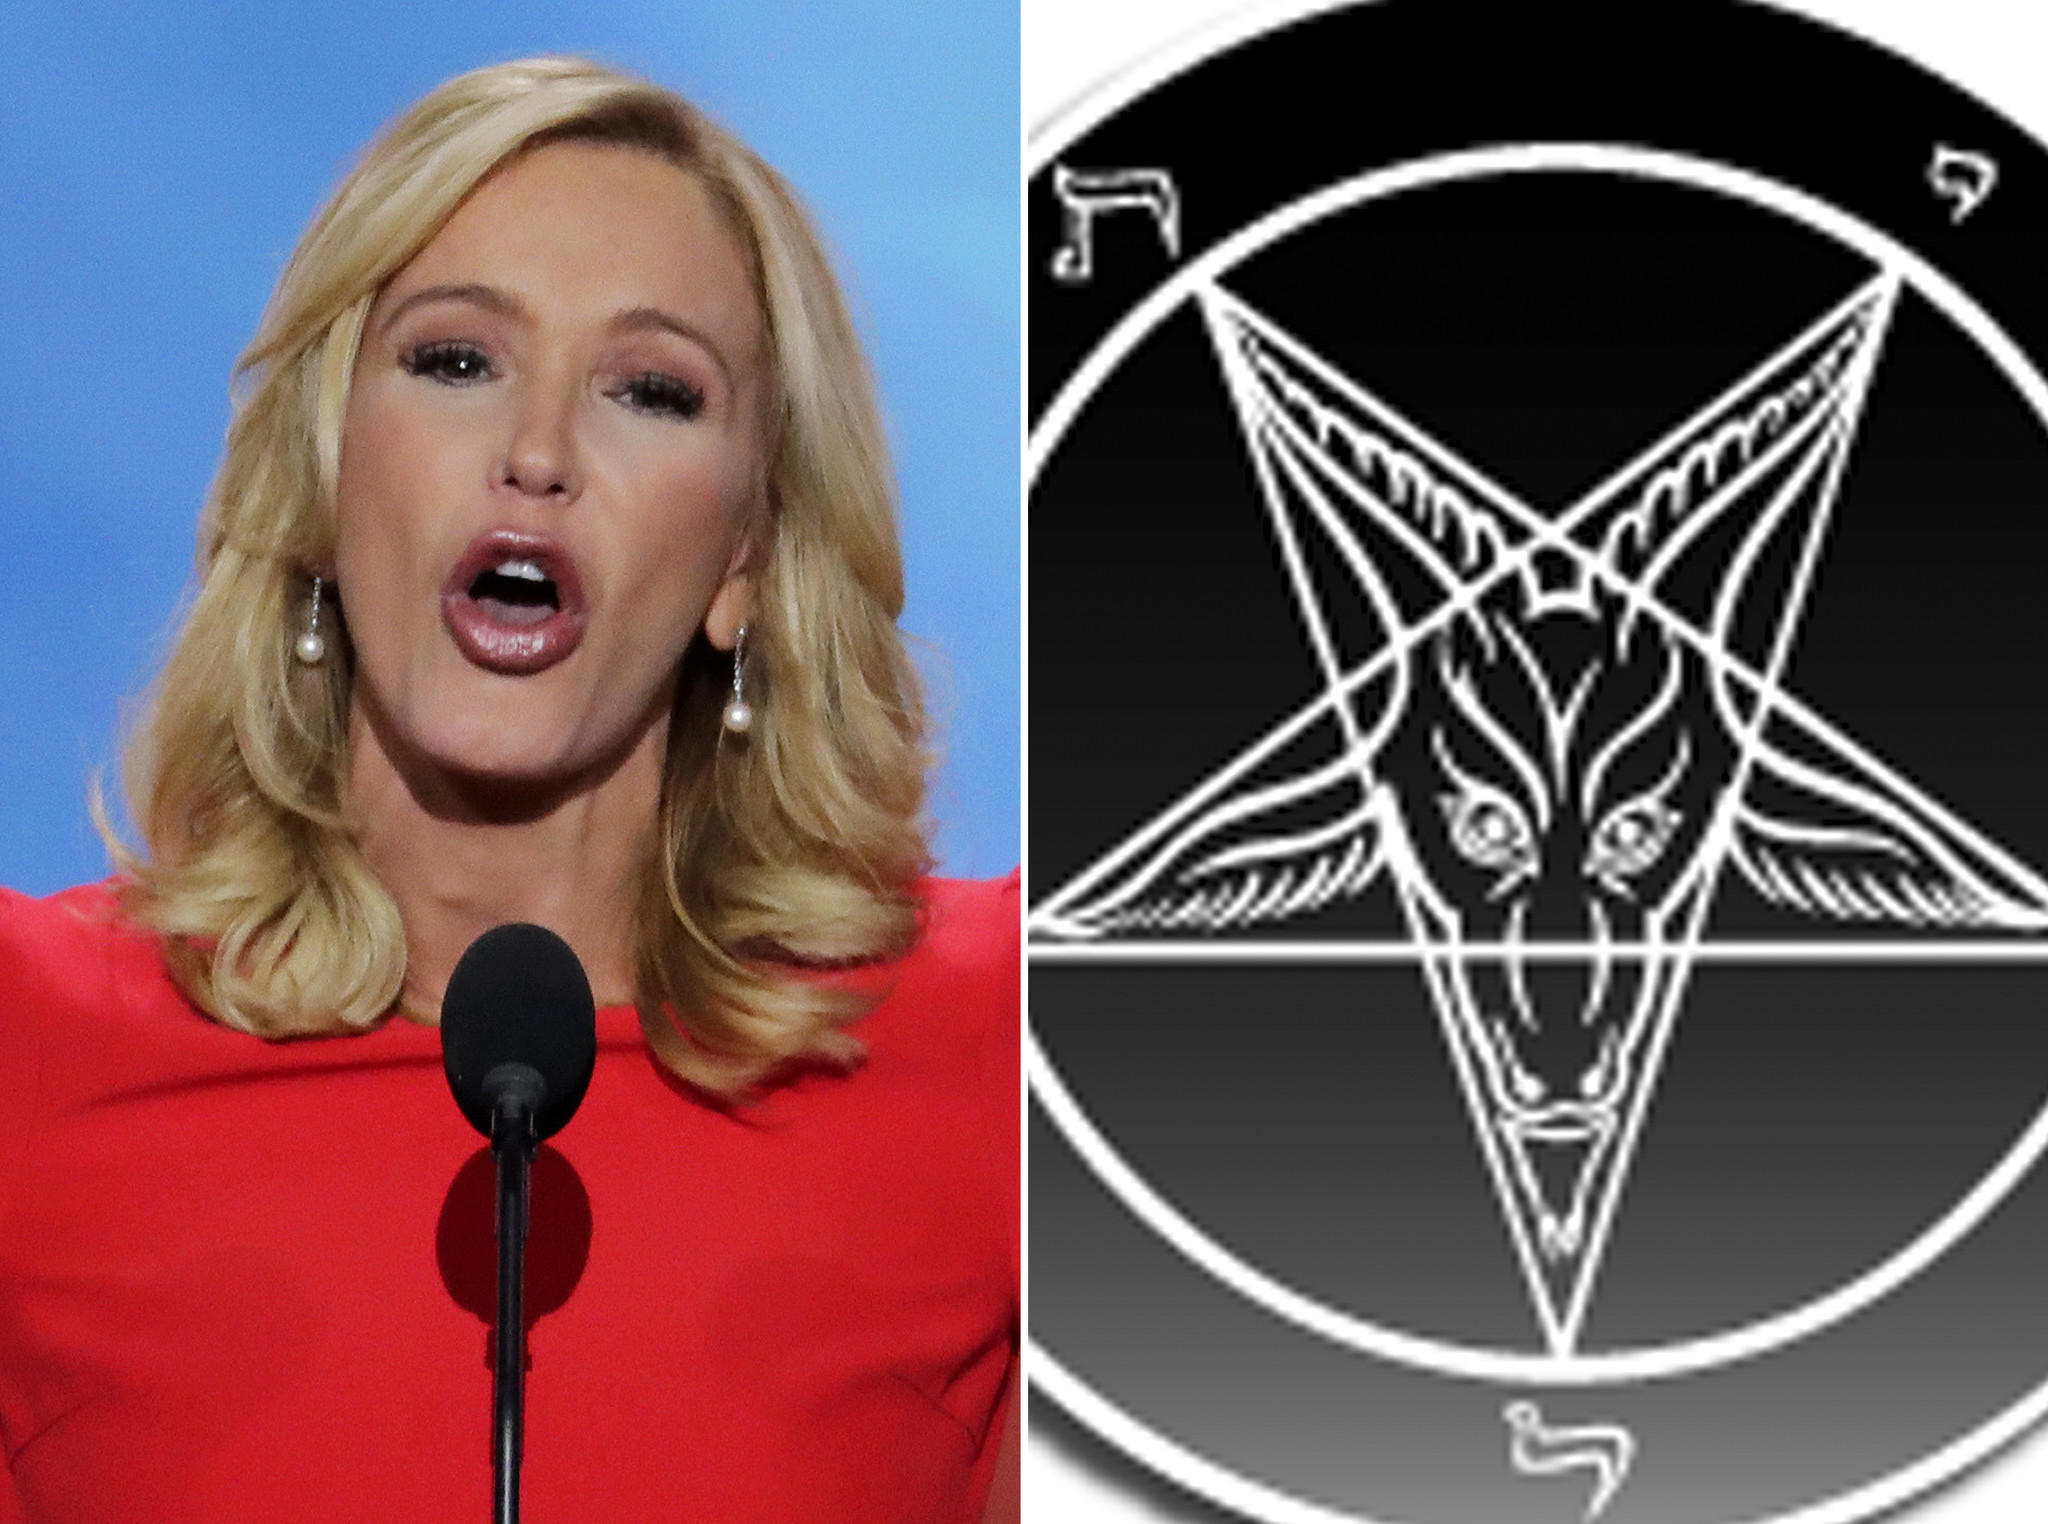 Church of Satan finds Trumps spiritual adviser a bit kooky, but is willing to work with her